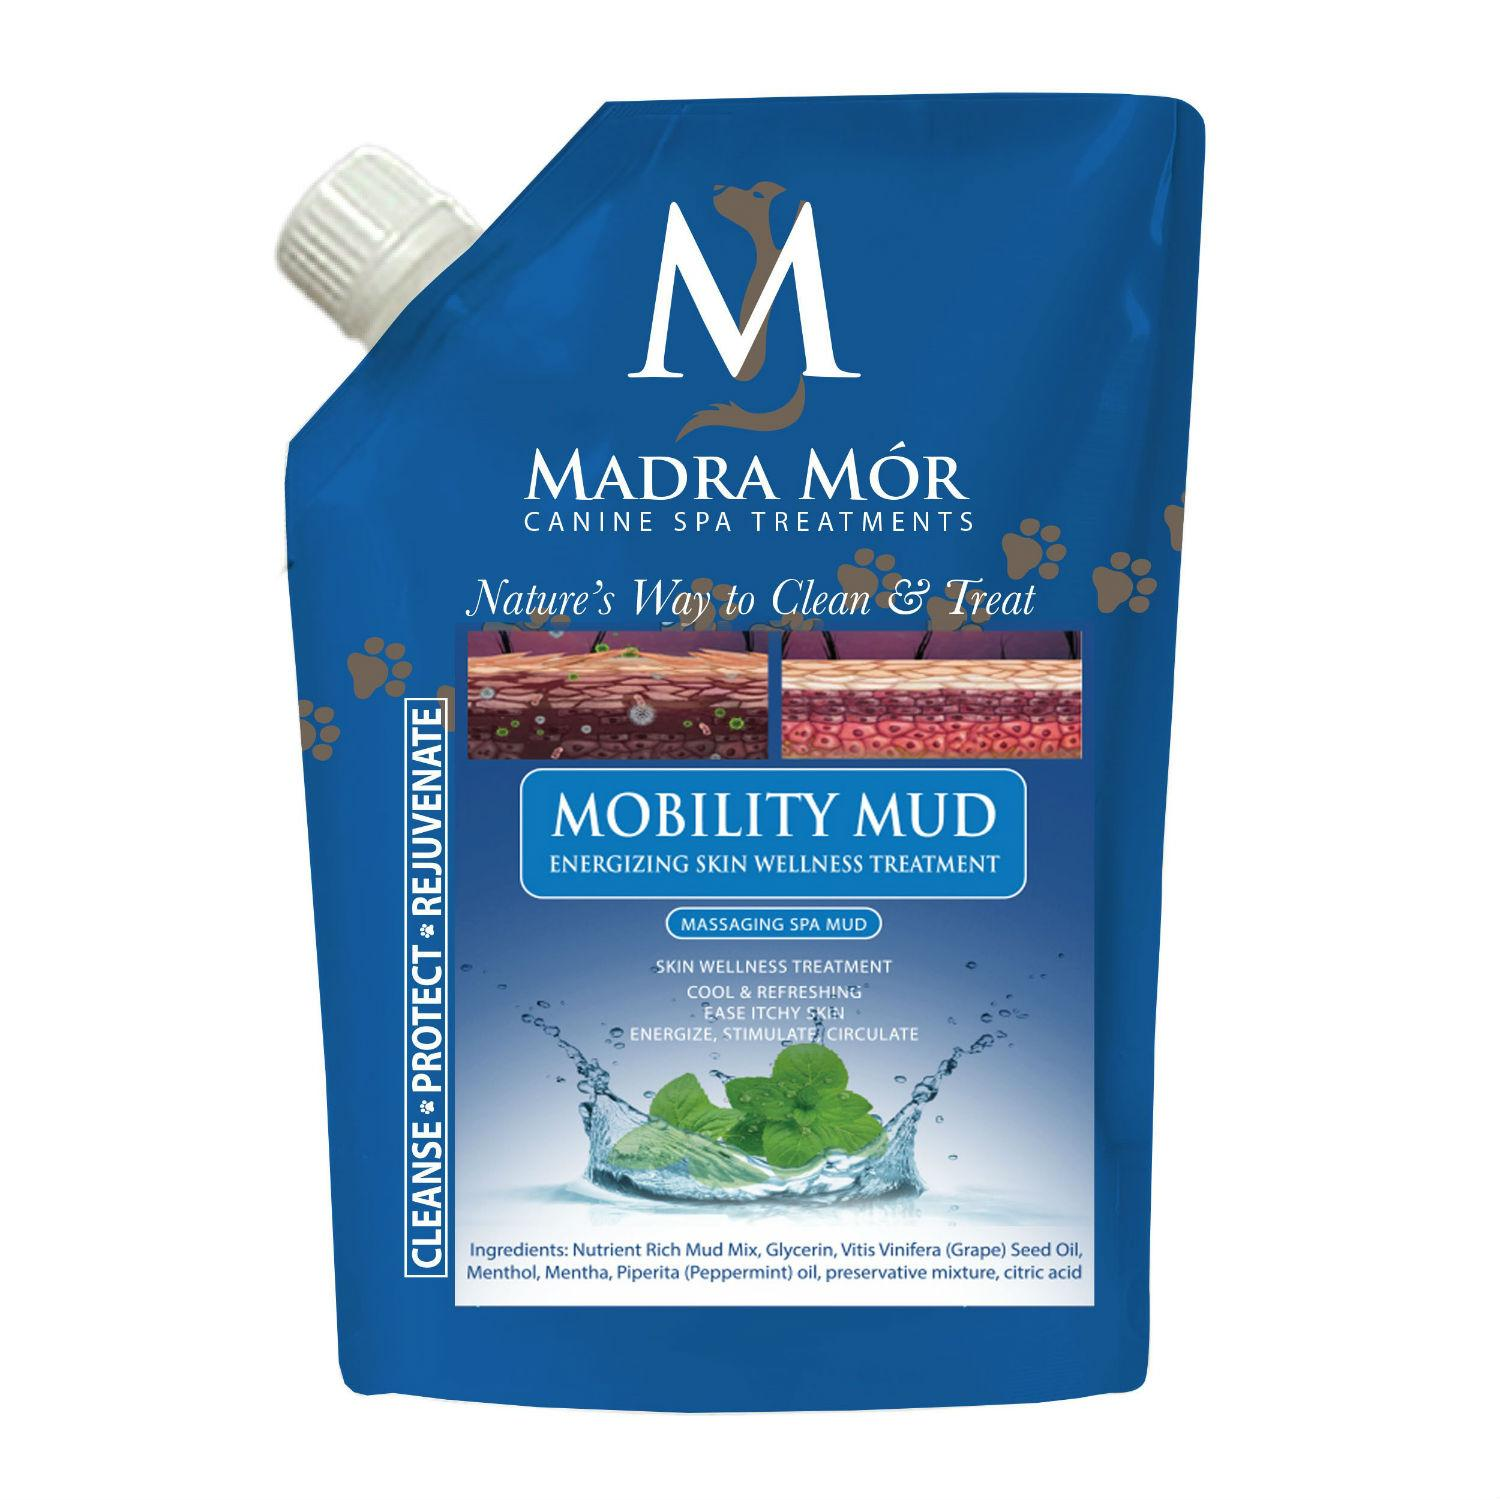 Madra Mór Canine Spa Treatments Mobility Spa Mud Dog Bath - Muscle & Joint Relief